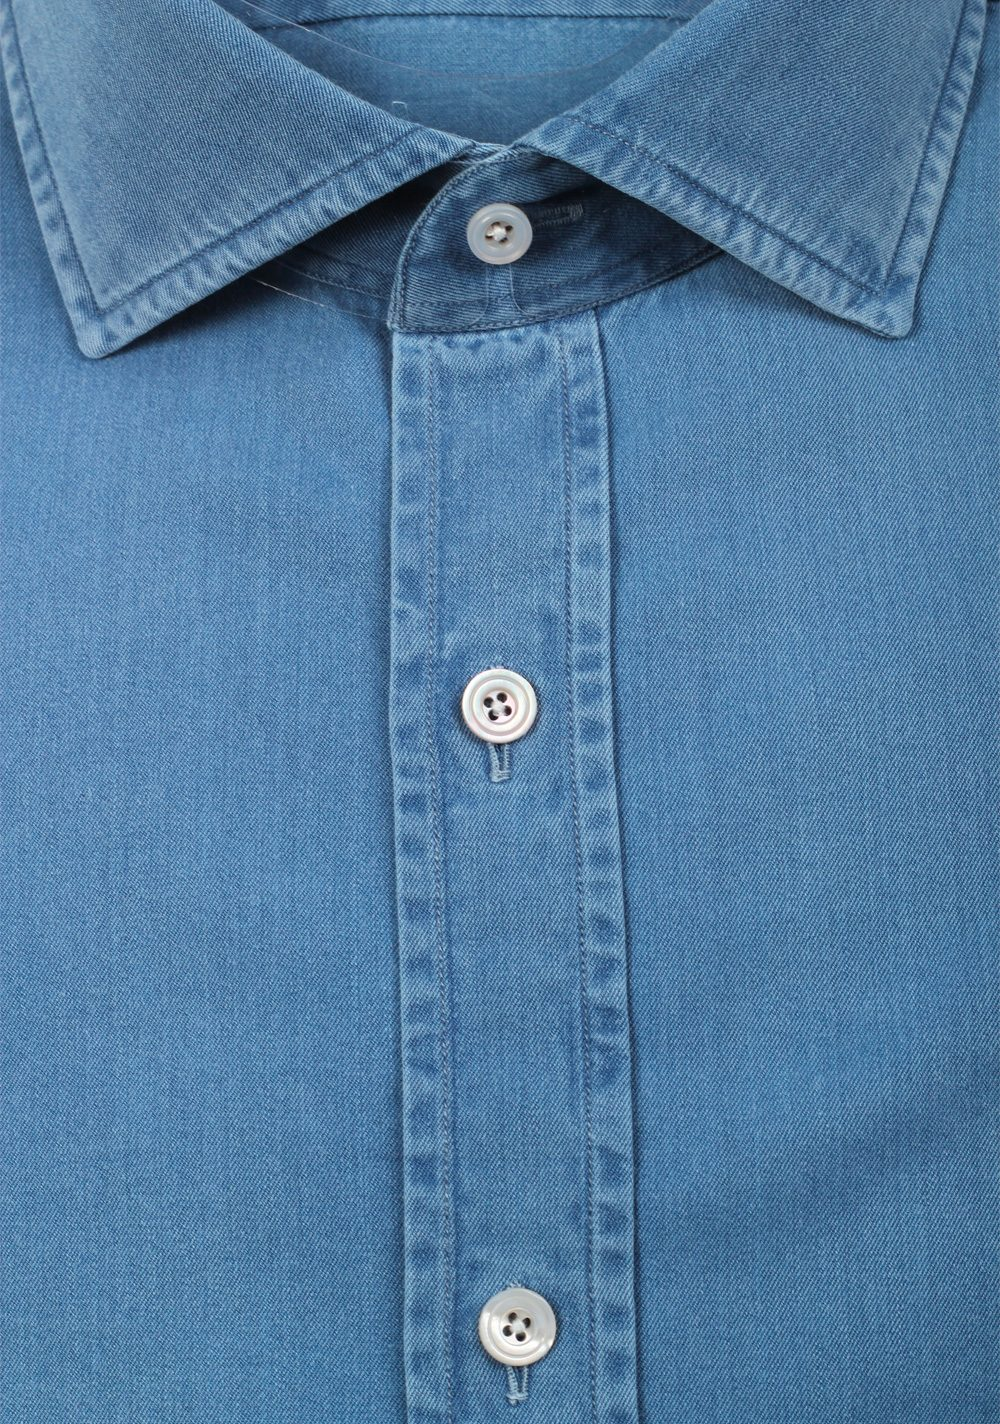 TOM FORD Solid Blue Denim Dress Shirt Size 42 / 16,5 U.S. | Costume Limité